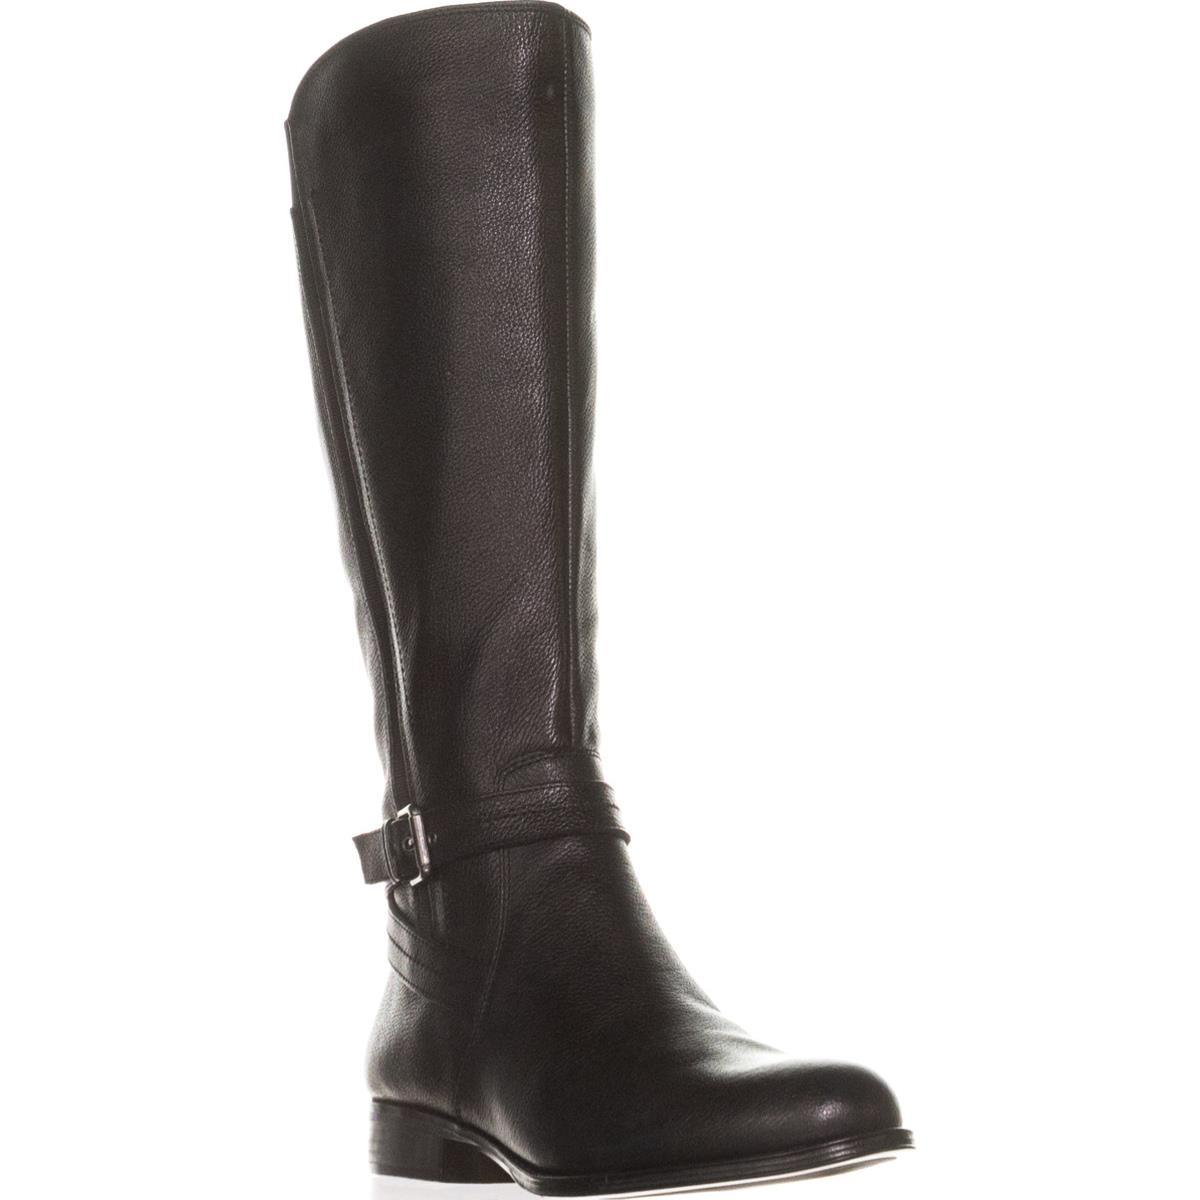 Womens Naturalizer Jelina Wide Calf Riding Boots, Black Leather by Naturalizer